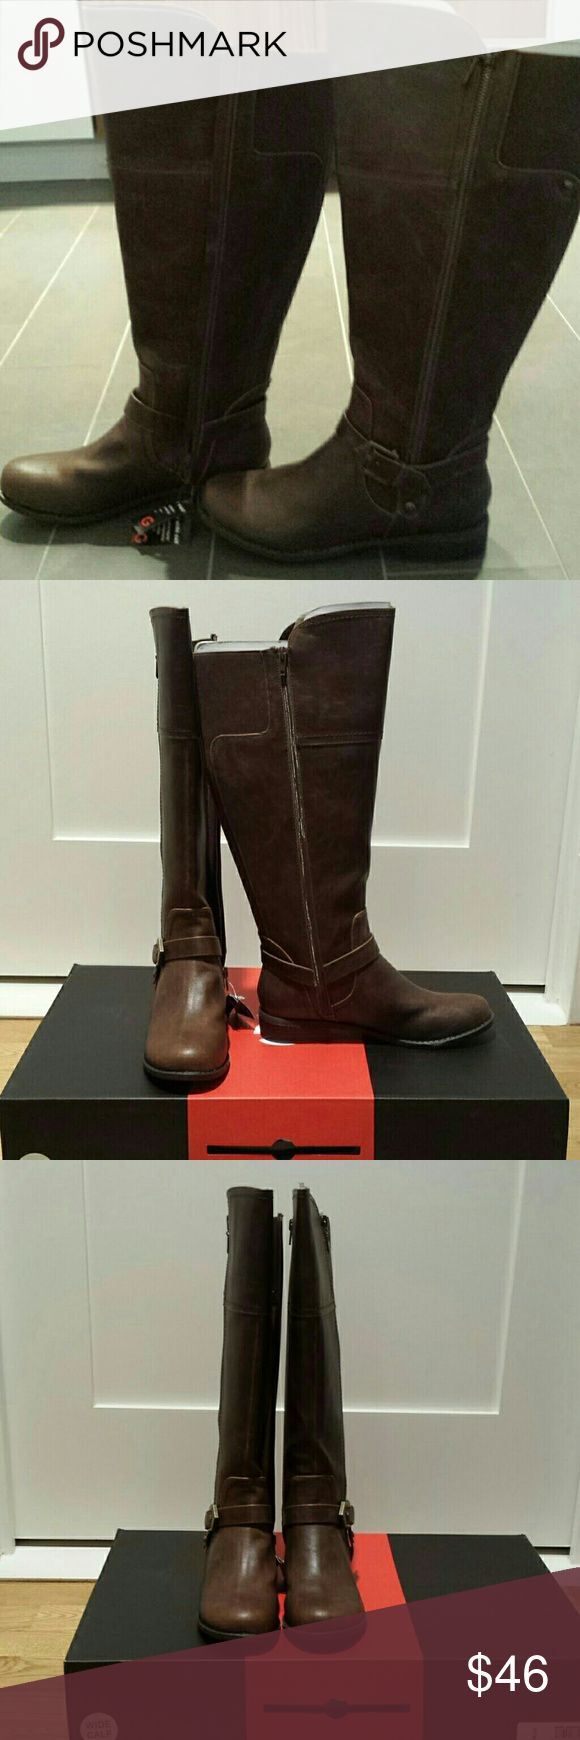 G by guess womens wide calf boots Wide calf riding boots  runs small if you wear 8 this is the right size for you G by Guess Shoes Over the Knee Boots